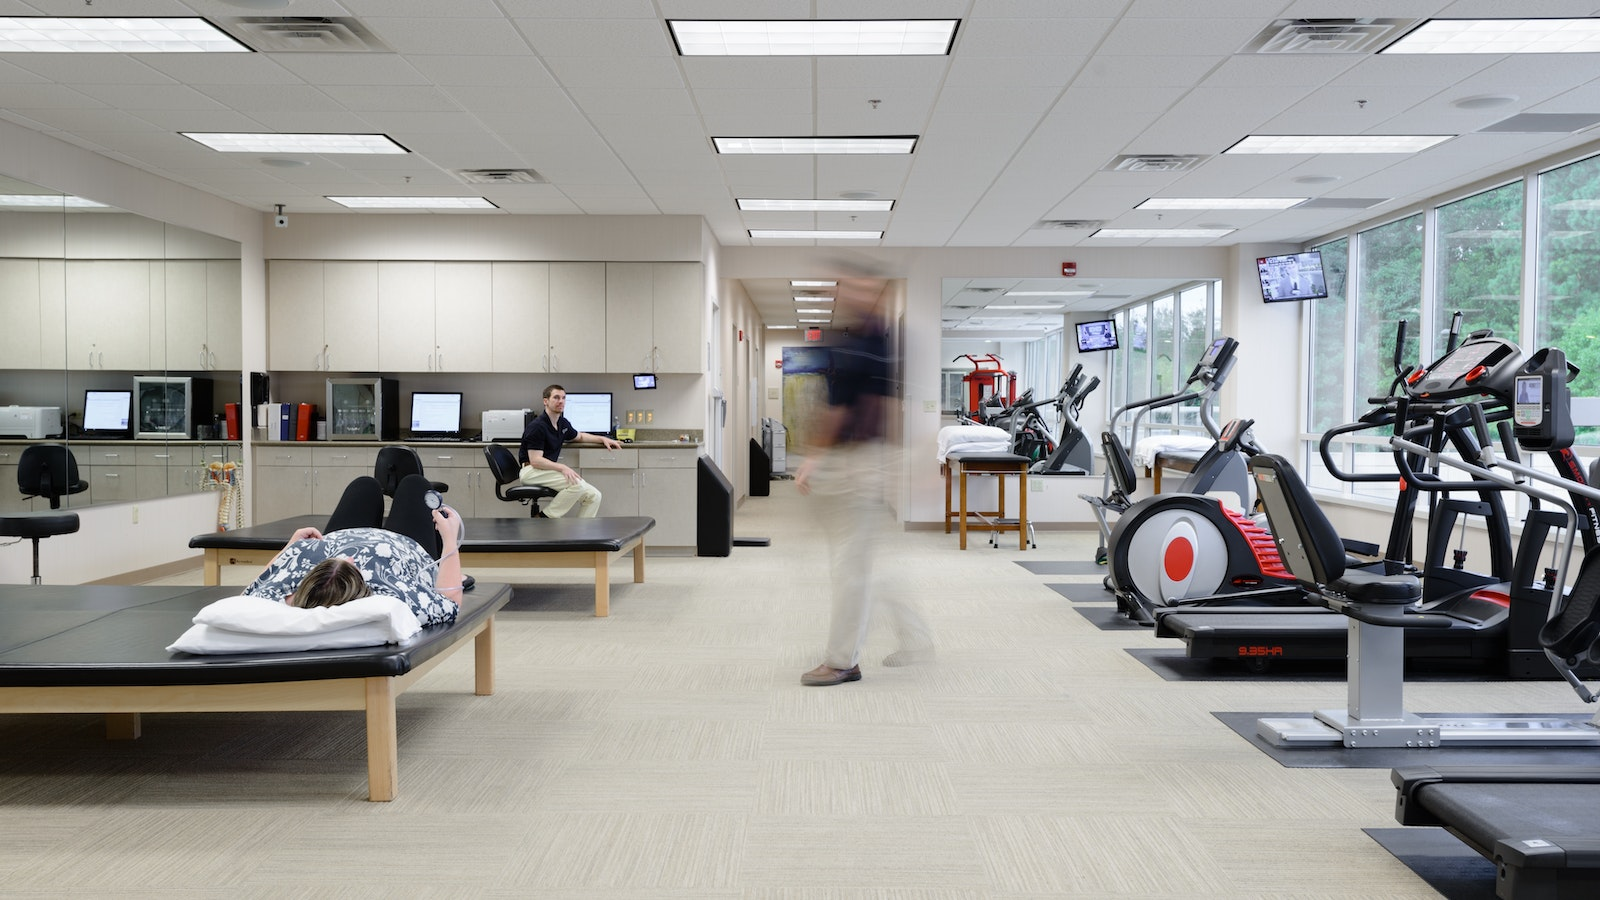 Blurred man walking through a physical therapy room